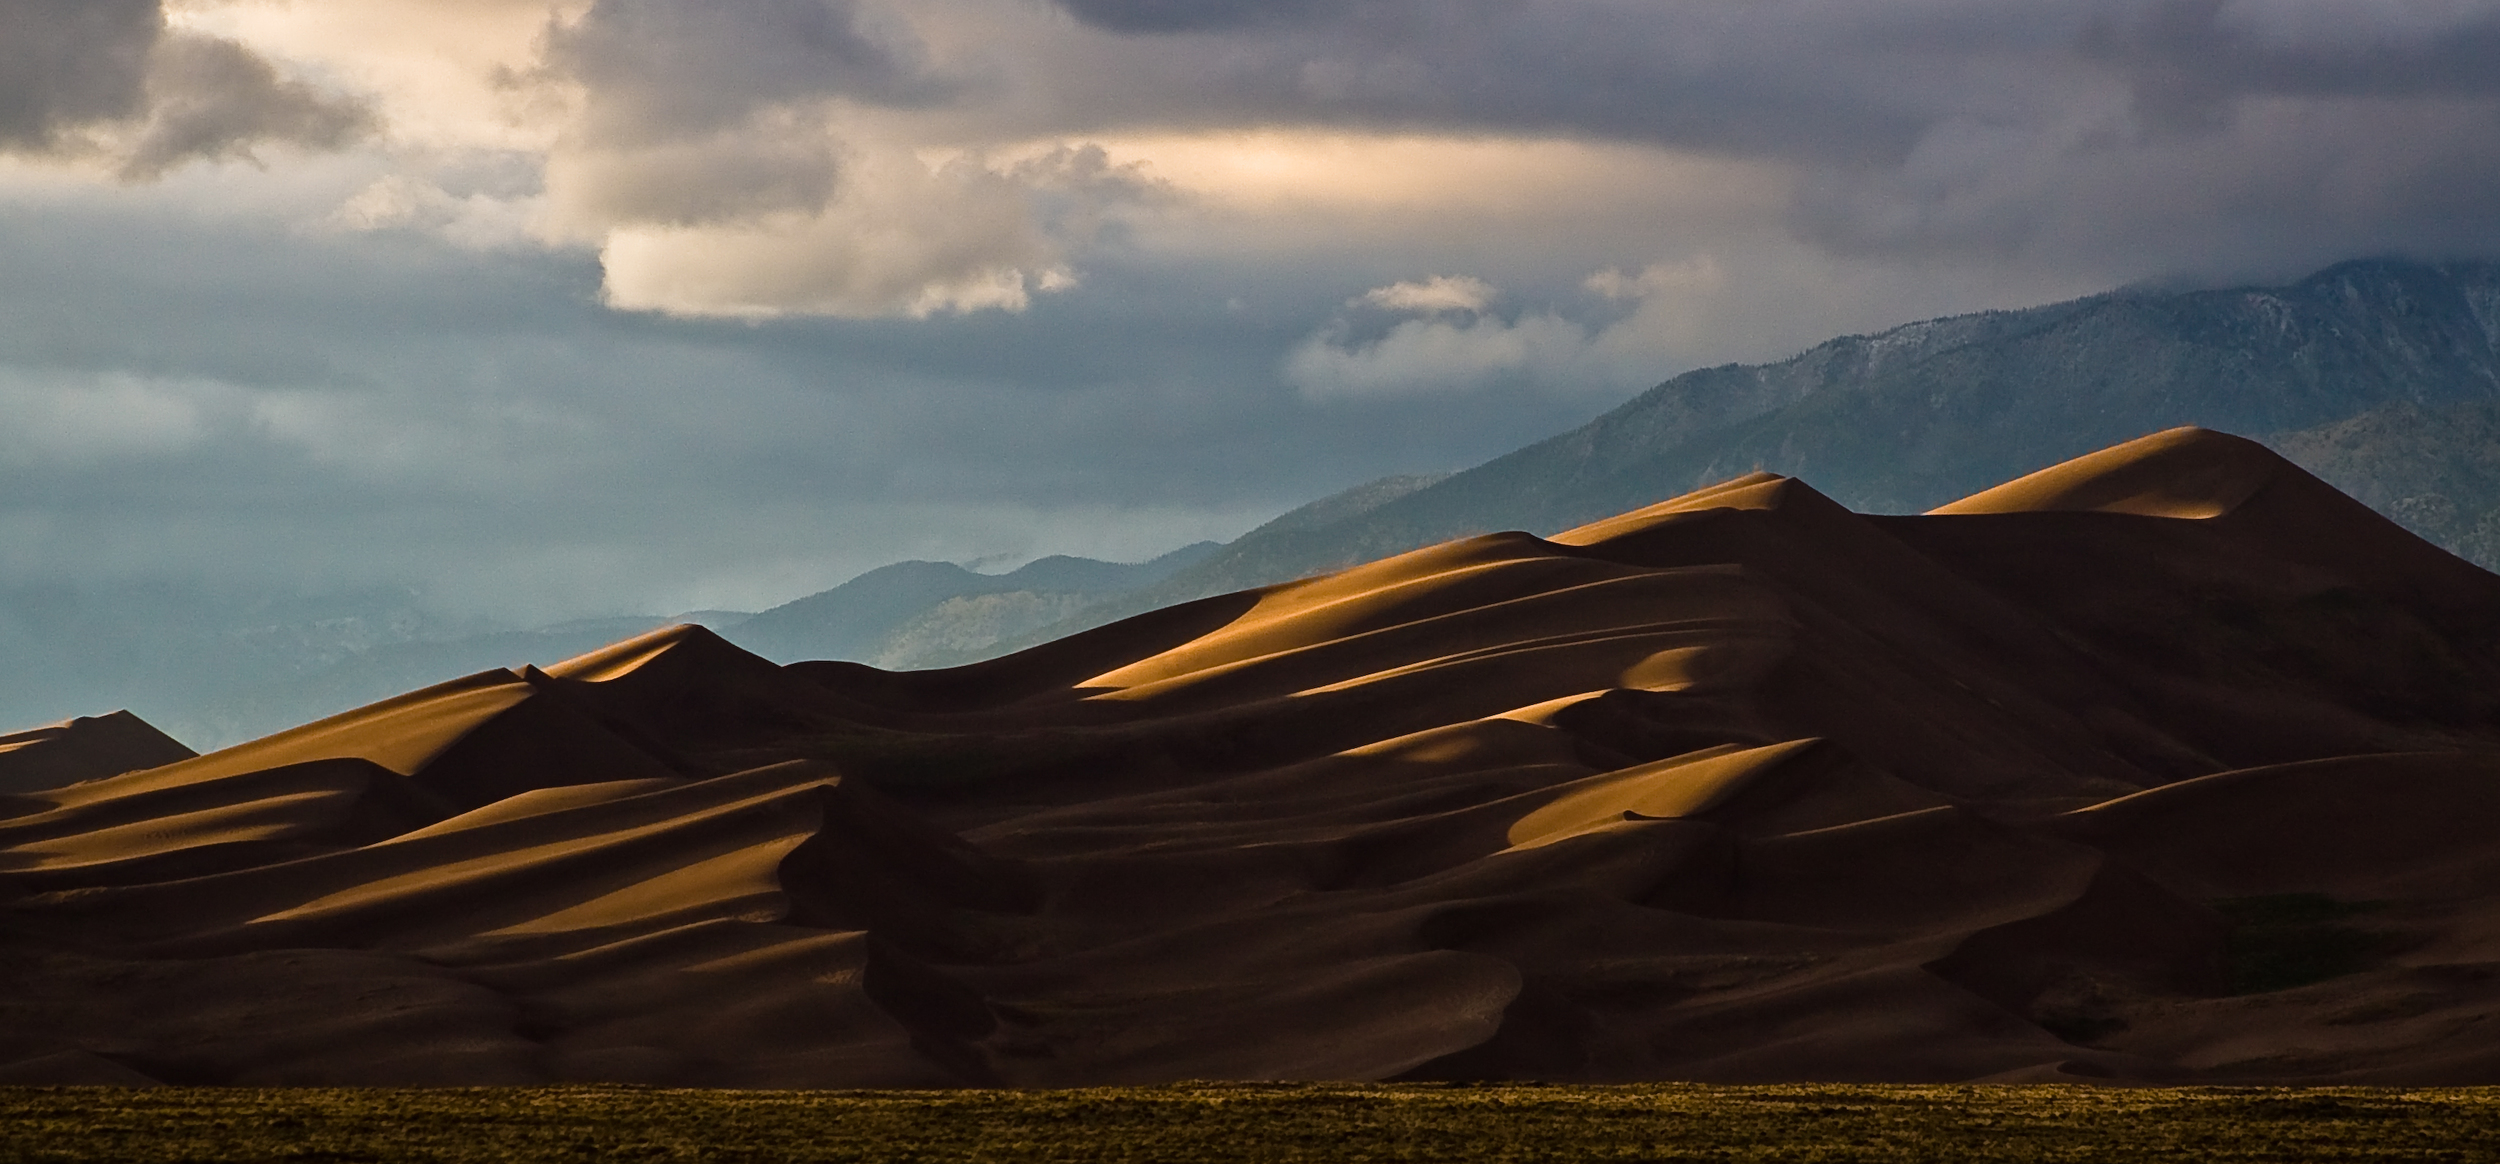 The dunes were formed from sand deposits of the Rio Grande and its tributaries, flowing through the San Luis Valley. Over the ages, westerly winds picked up sand particles from the river flood plain. As the wind lost power before crossing the Sangre de Cristo Range, the sand was deposited on the east edge of the valley. This process continues, and the dunes are slowly growing. The wind changes the shape of the dunes daily.